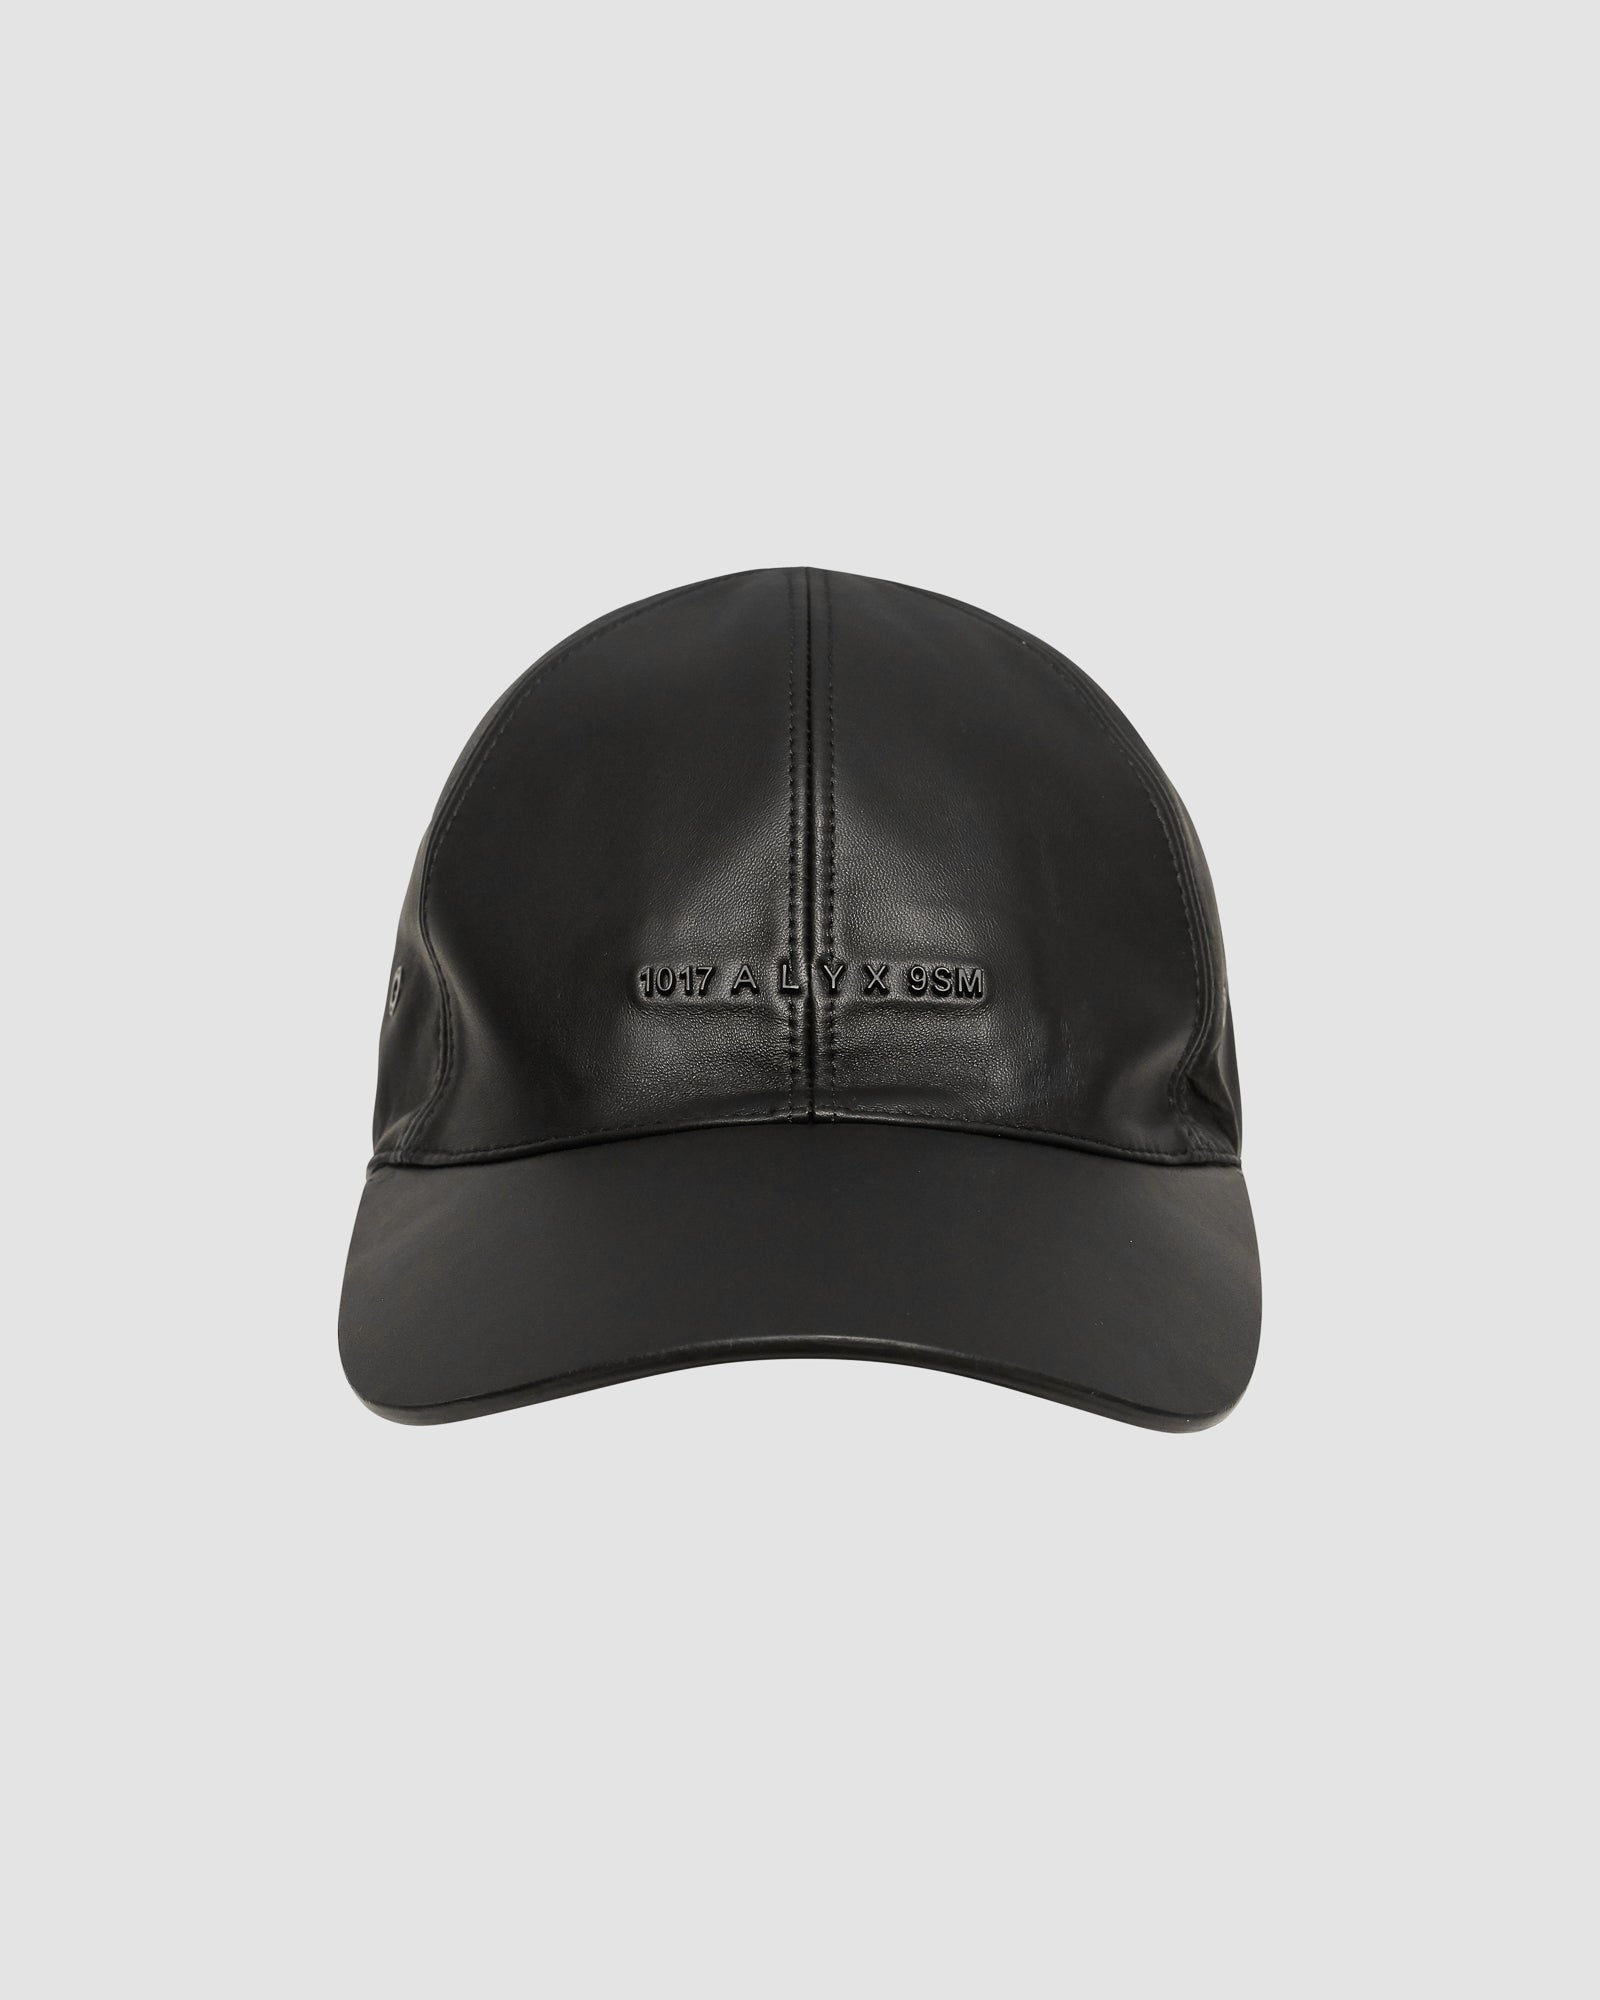 LOGO HAT W/ BUCKLE